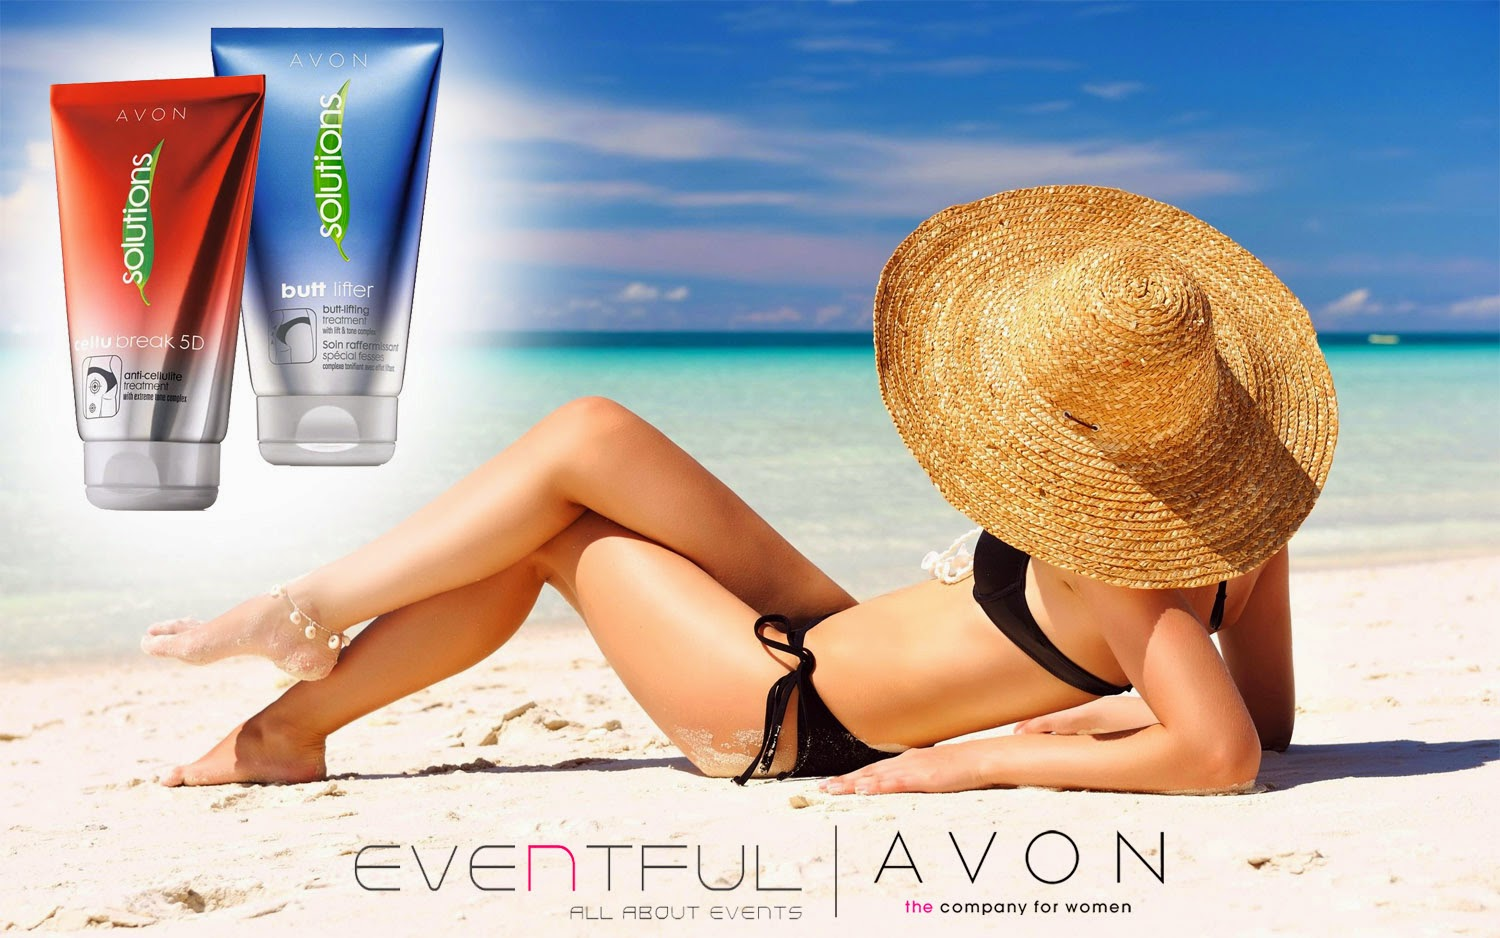 http://eventful.gr/site/diagonismos-avon-eventful/